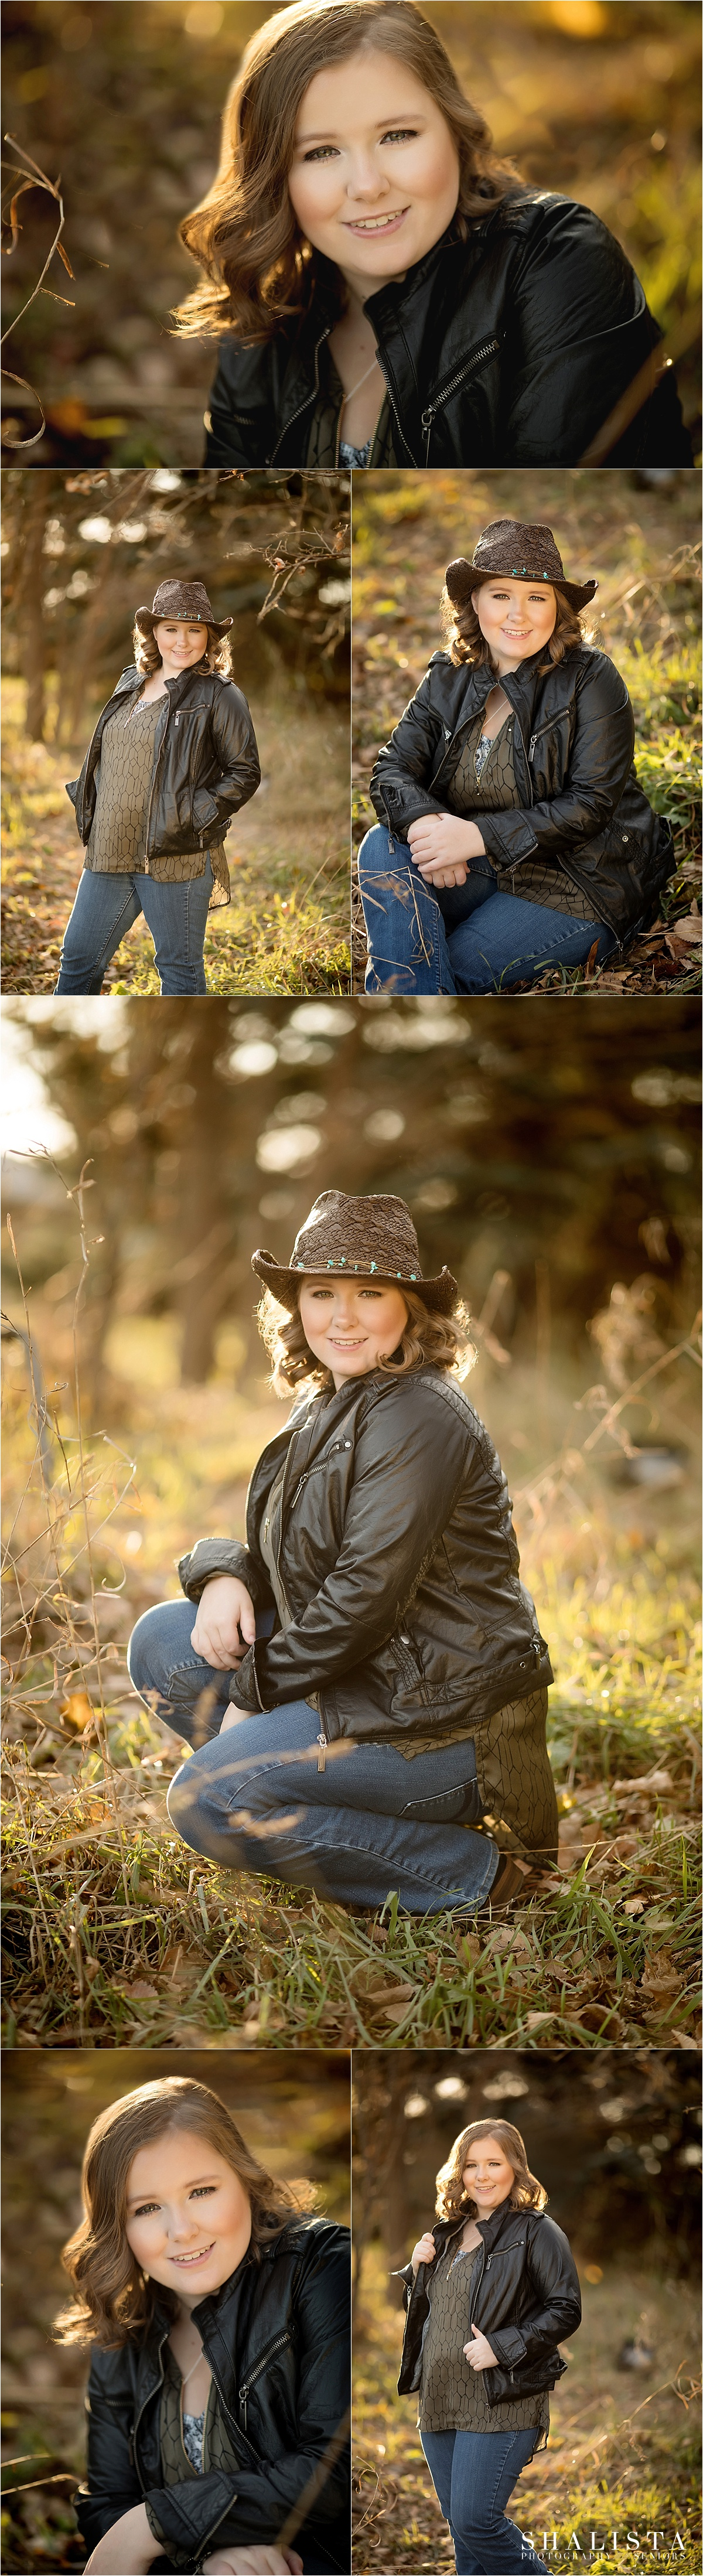 Fall Senior Girl photos in golden hour.